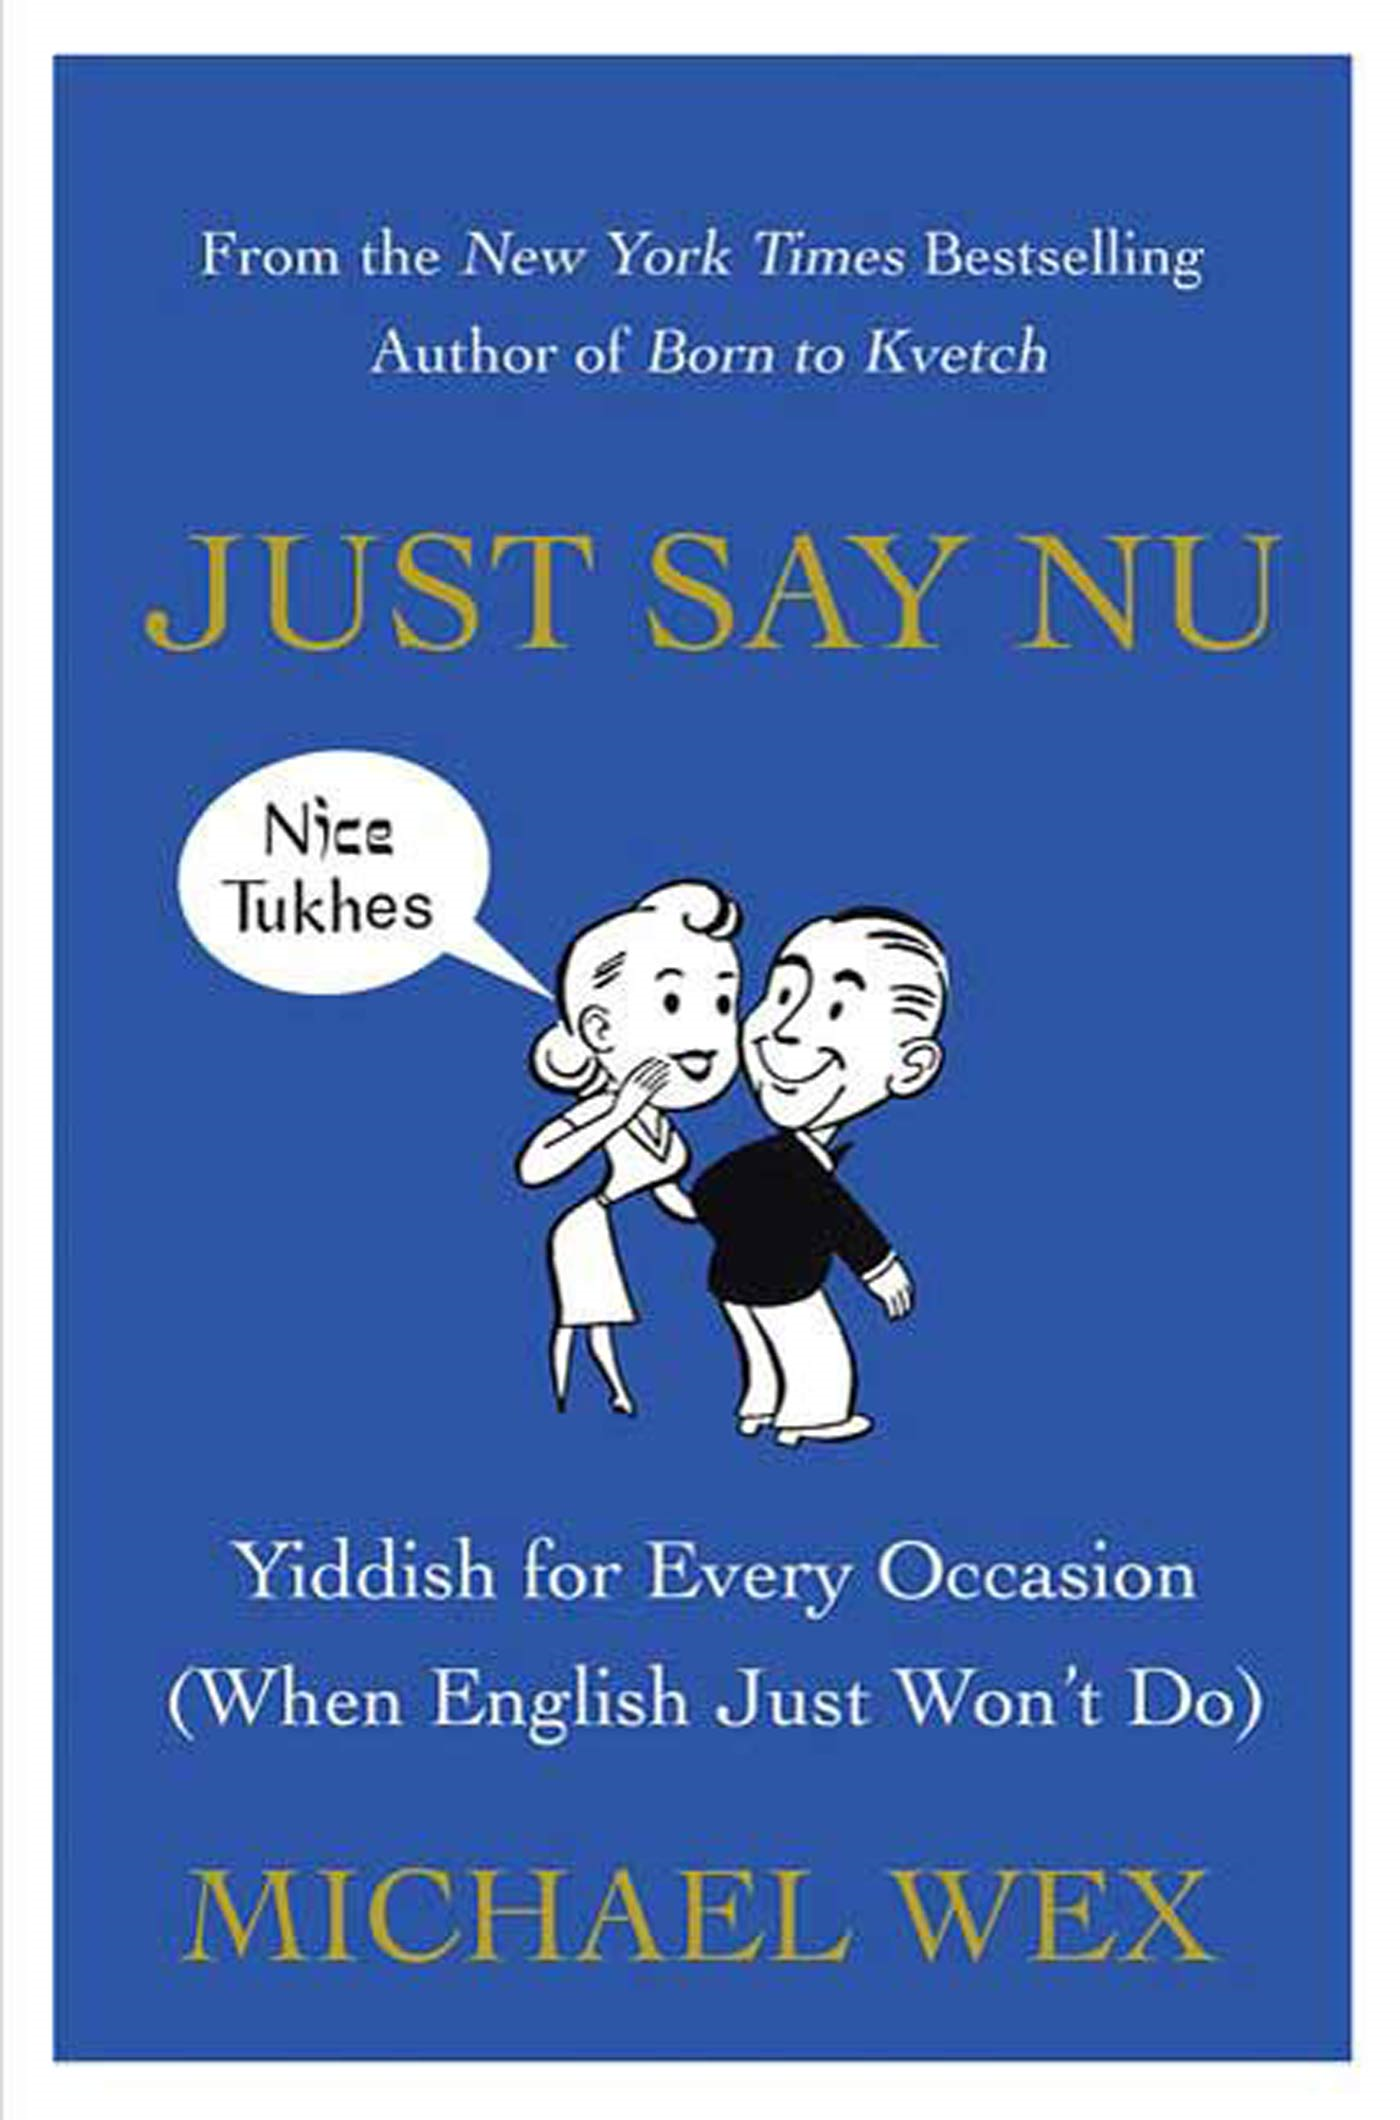 Just Say Nu By: Michael Wex